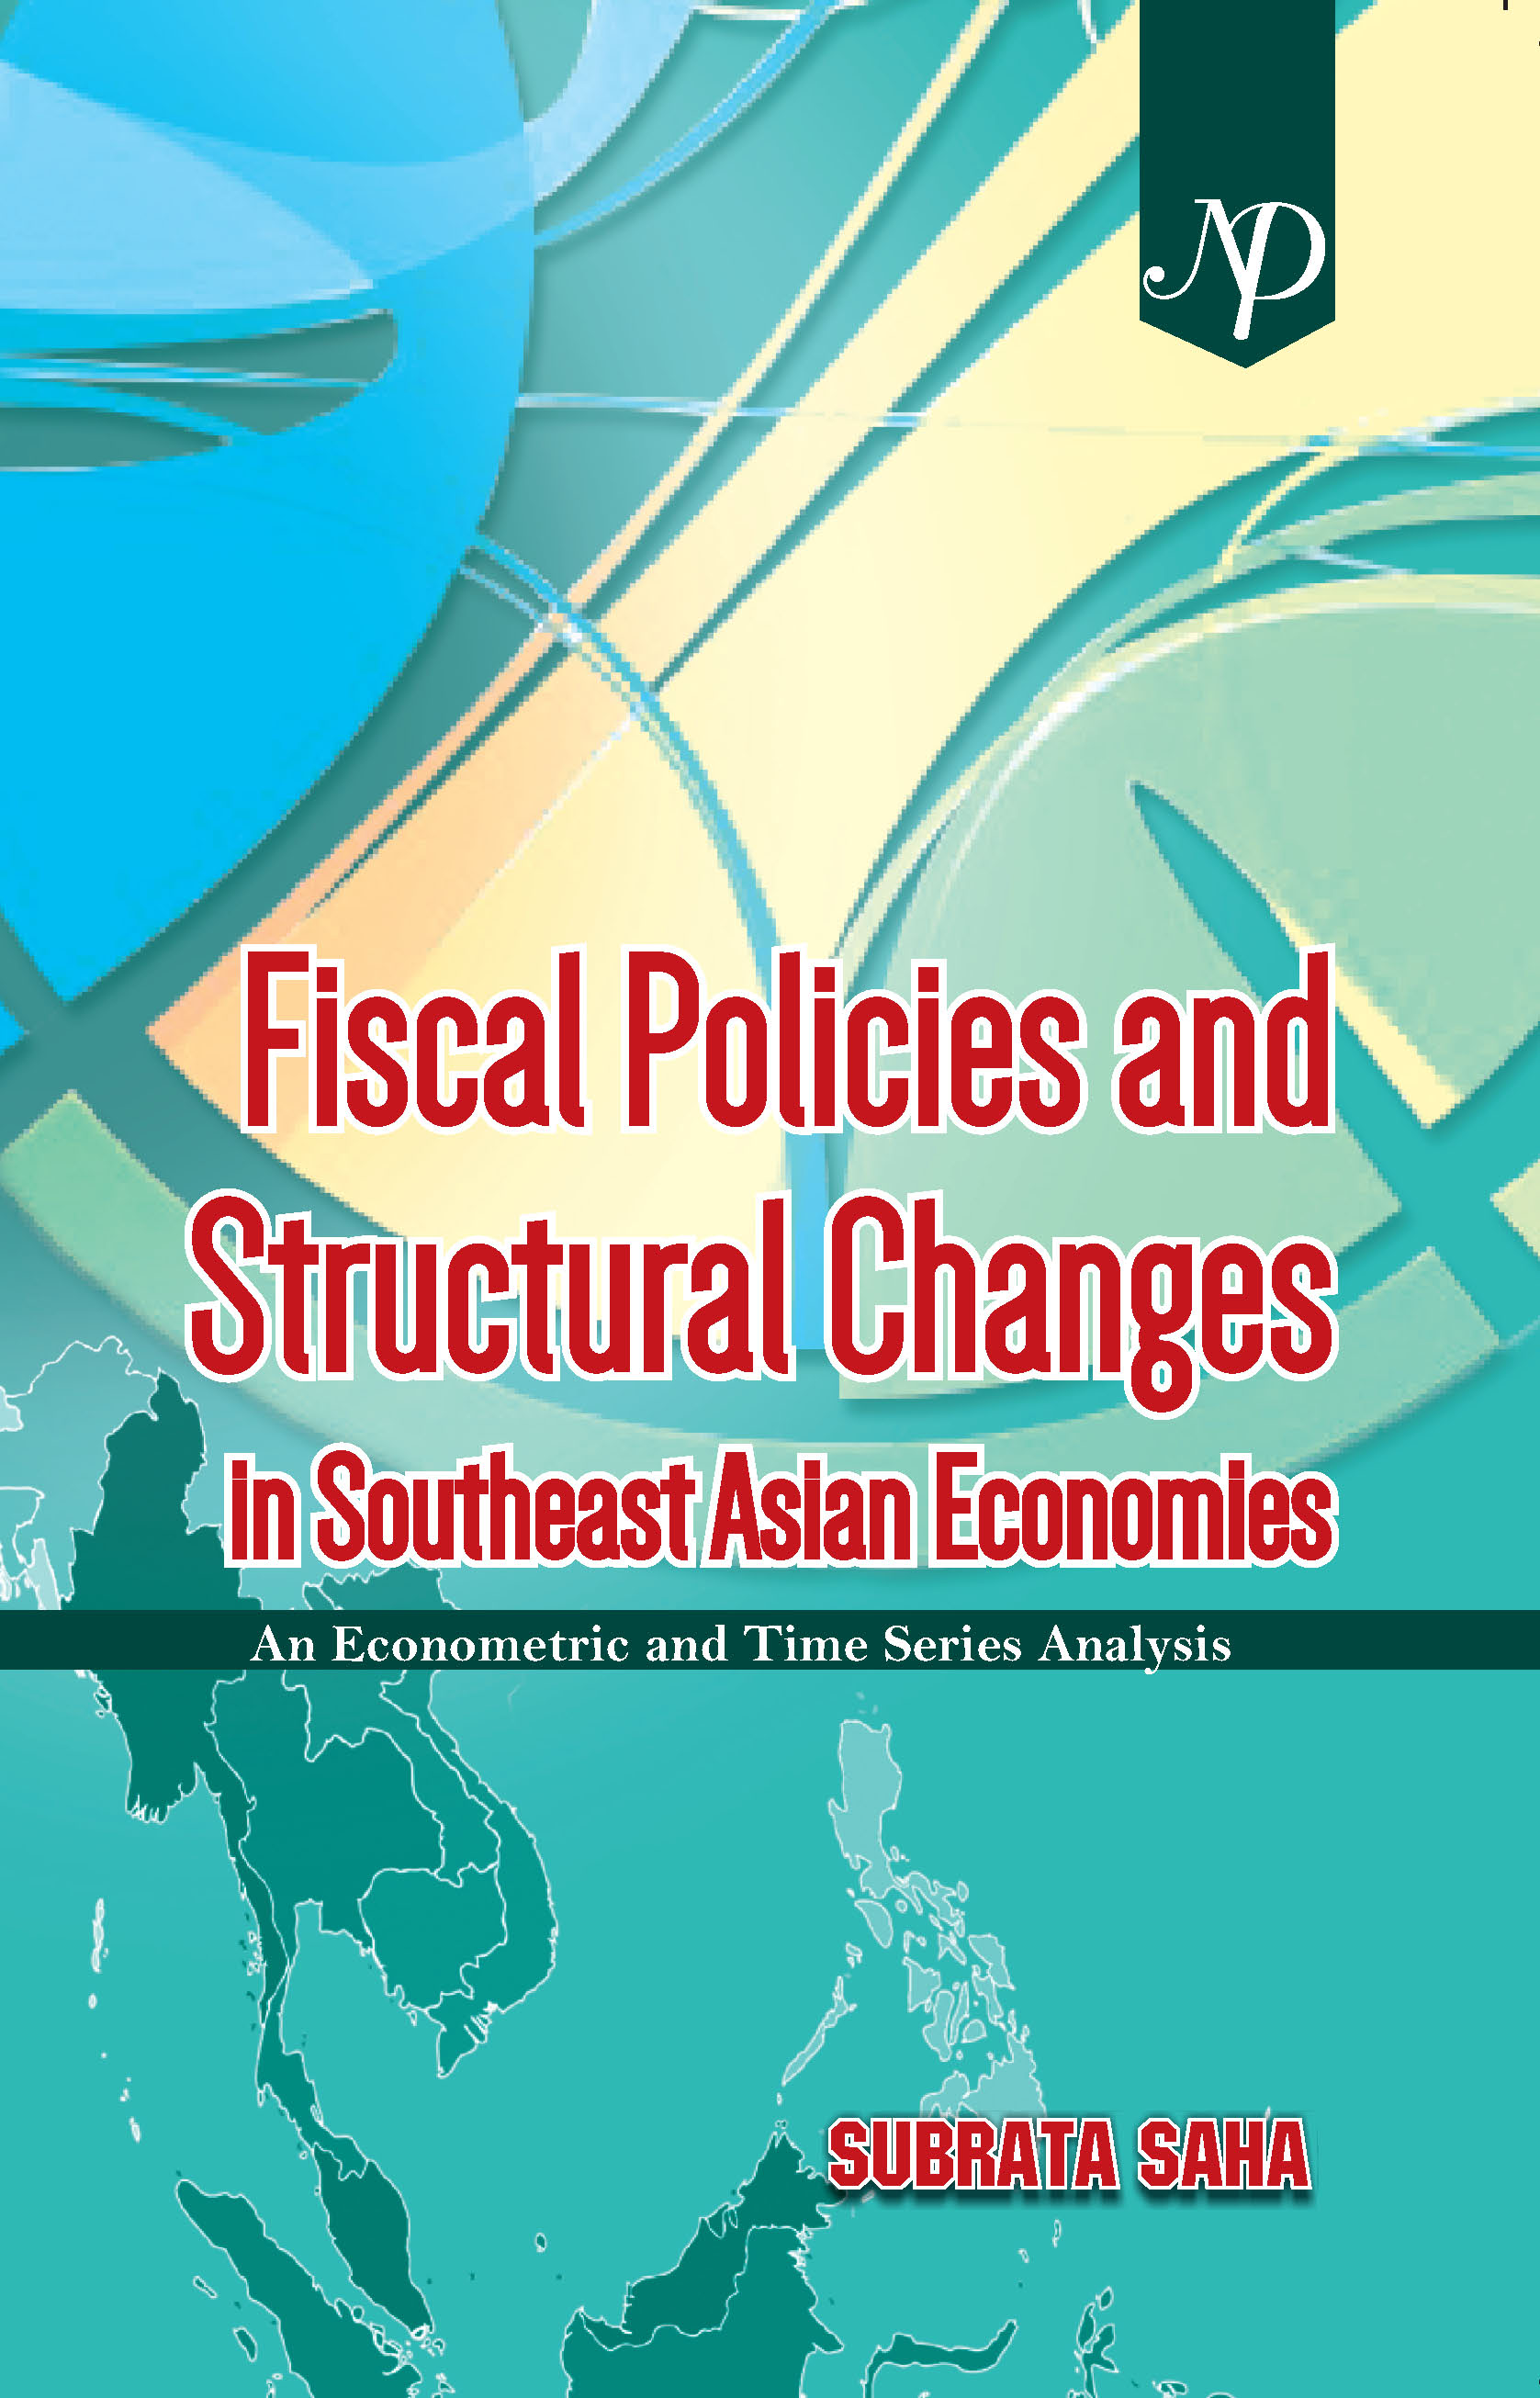 Fiscal Policies and Structural Changes in Southeast Asian Economies - An Econometric and Time Series Analysis